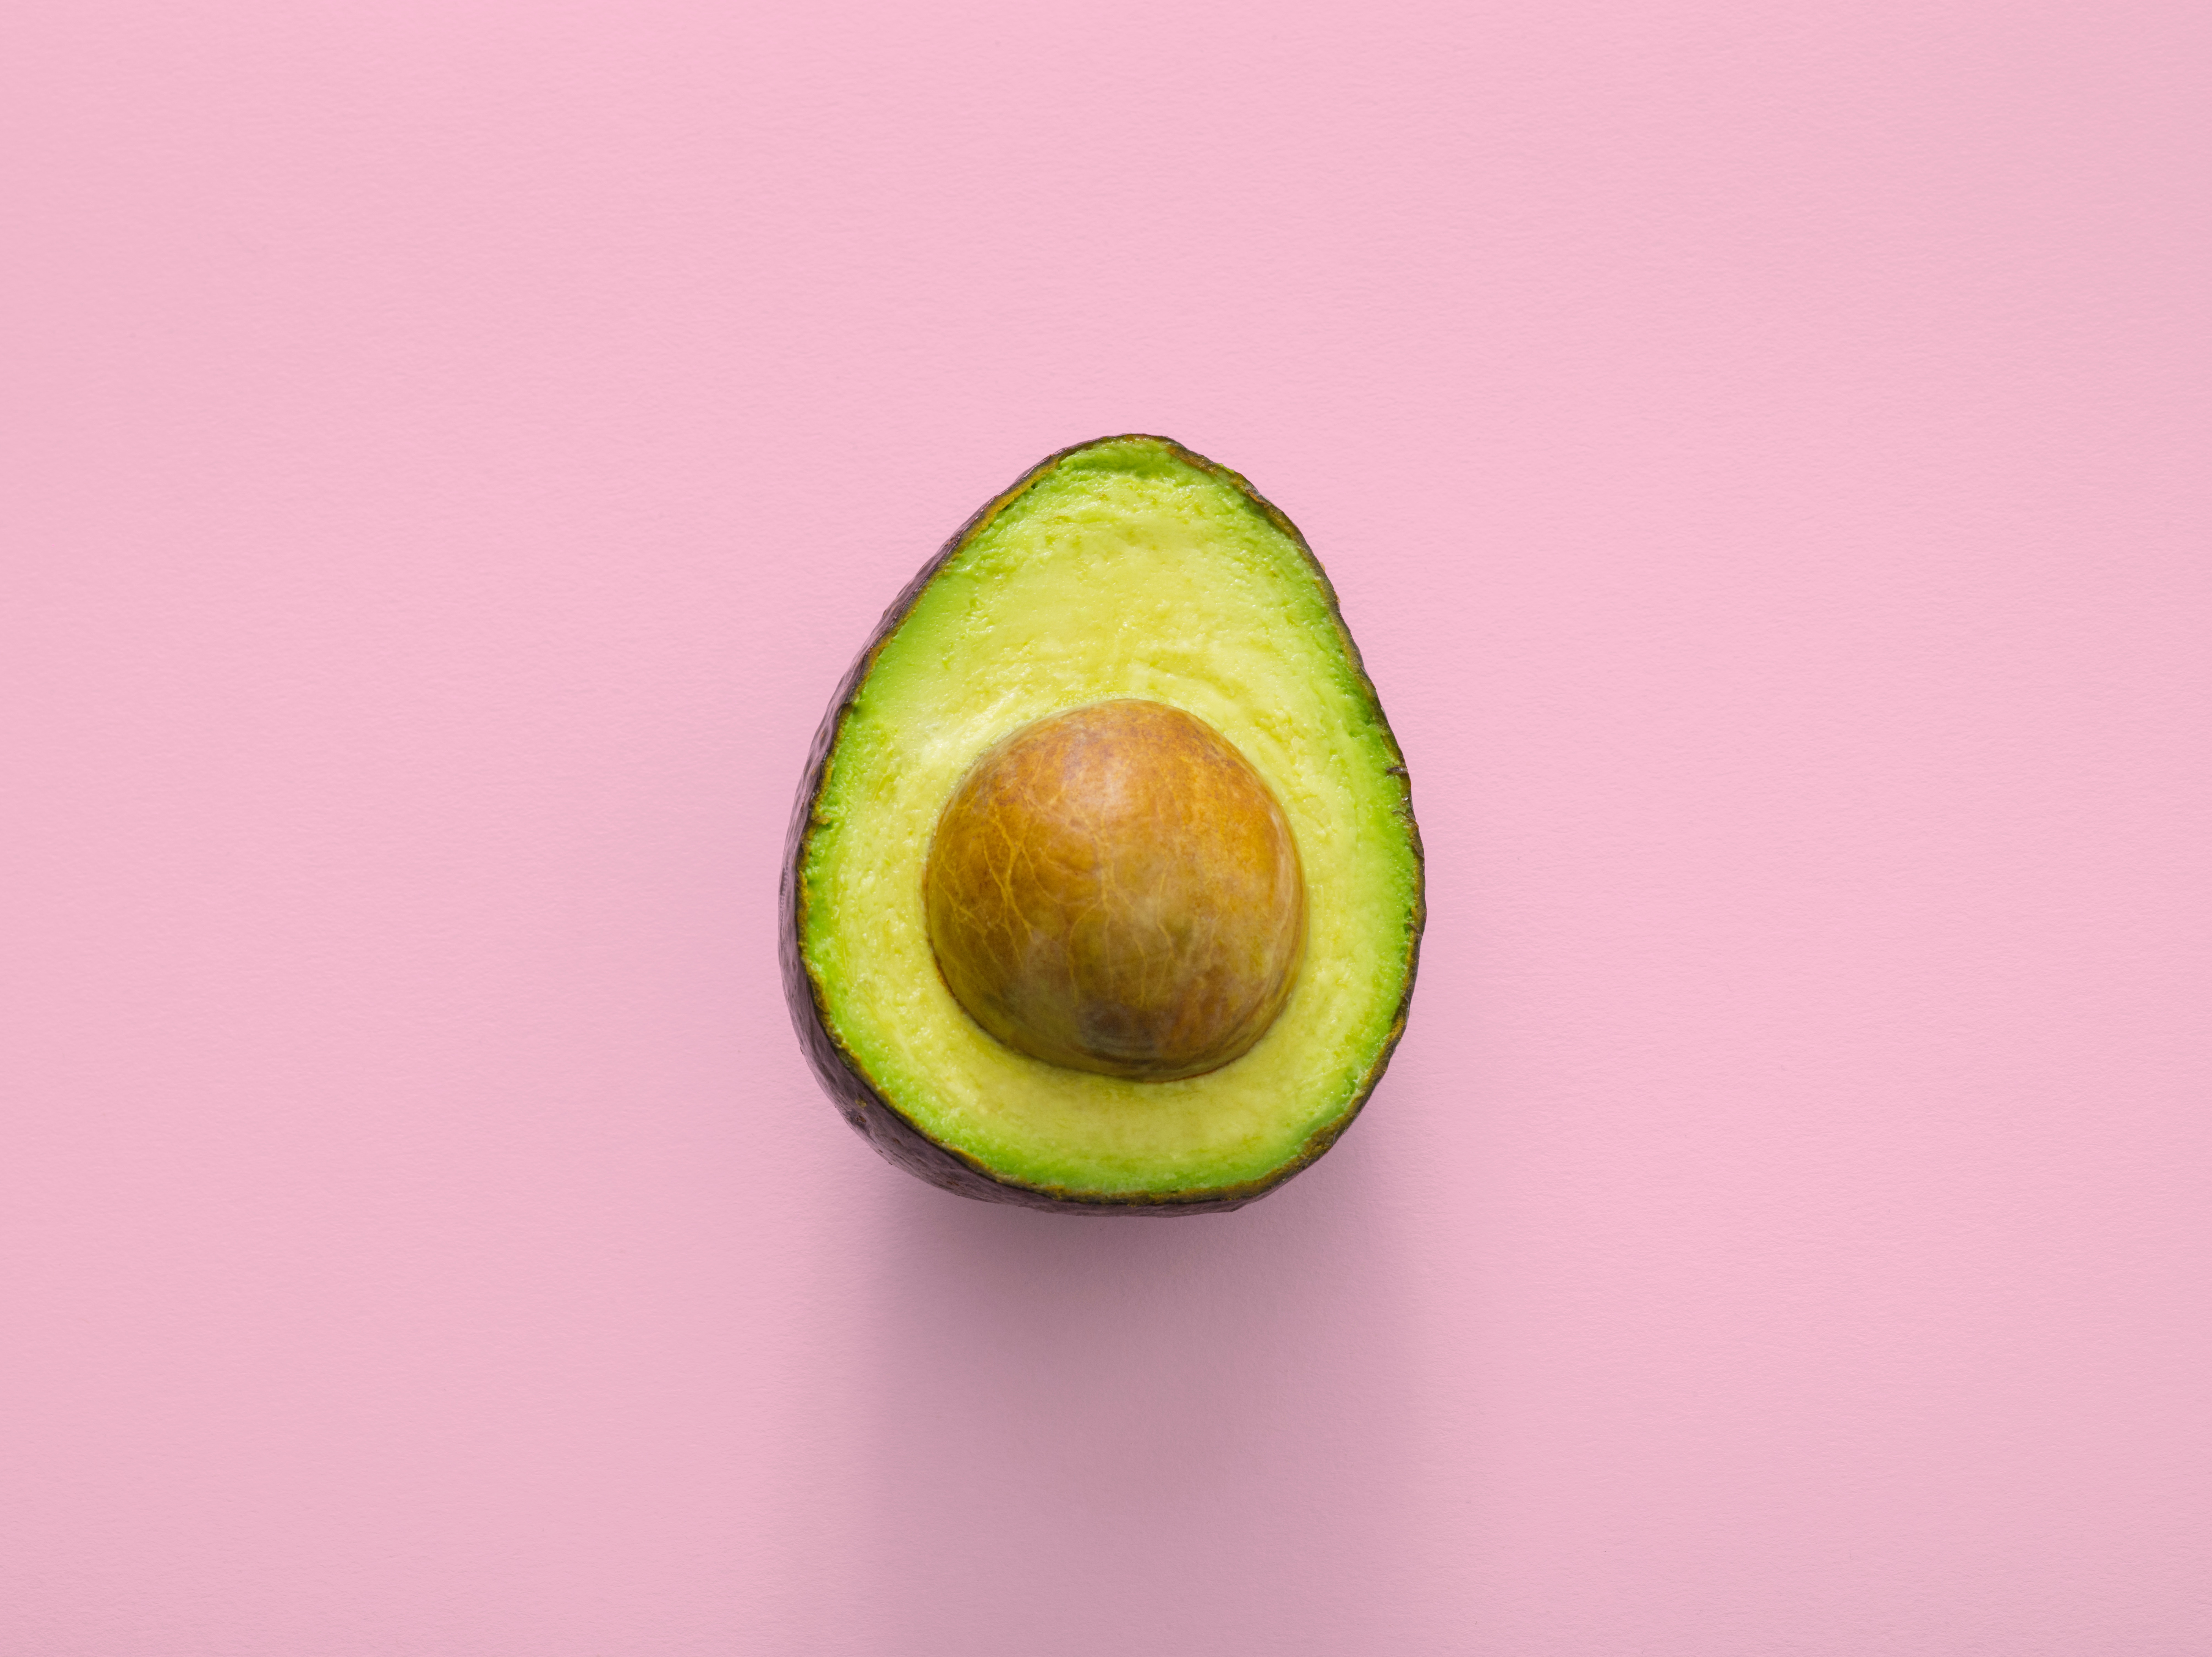 69059 download wallpaper Minimalism, Pink, Avocado screensavers and pictures for free